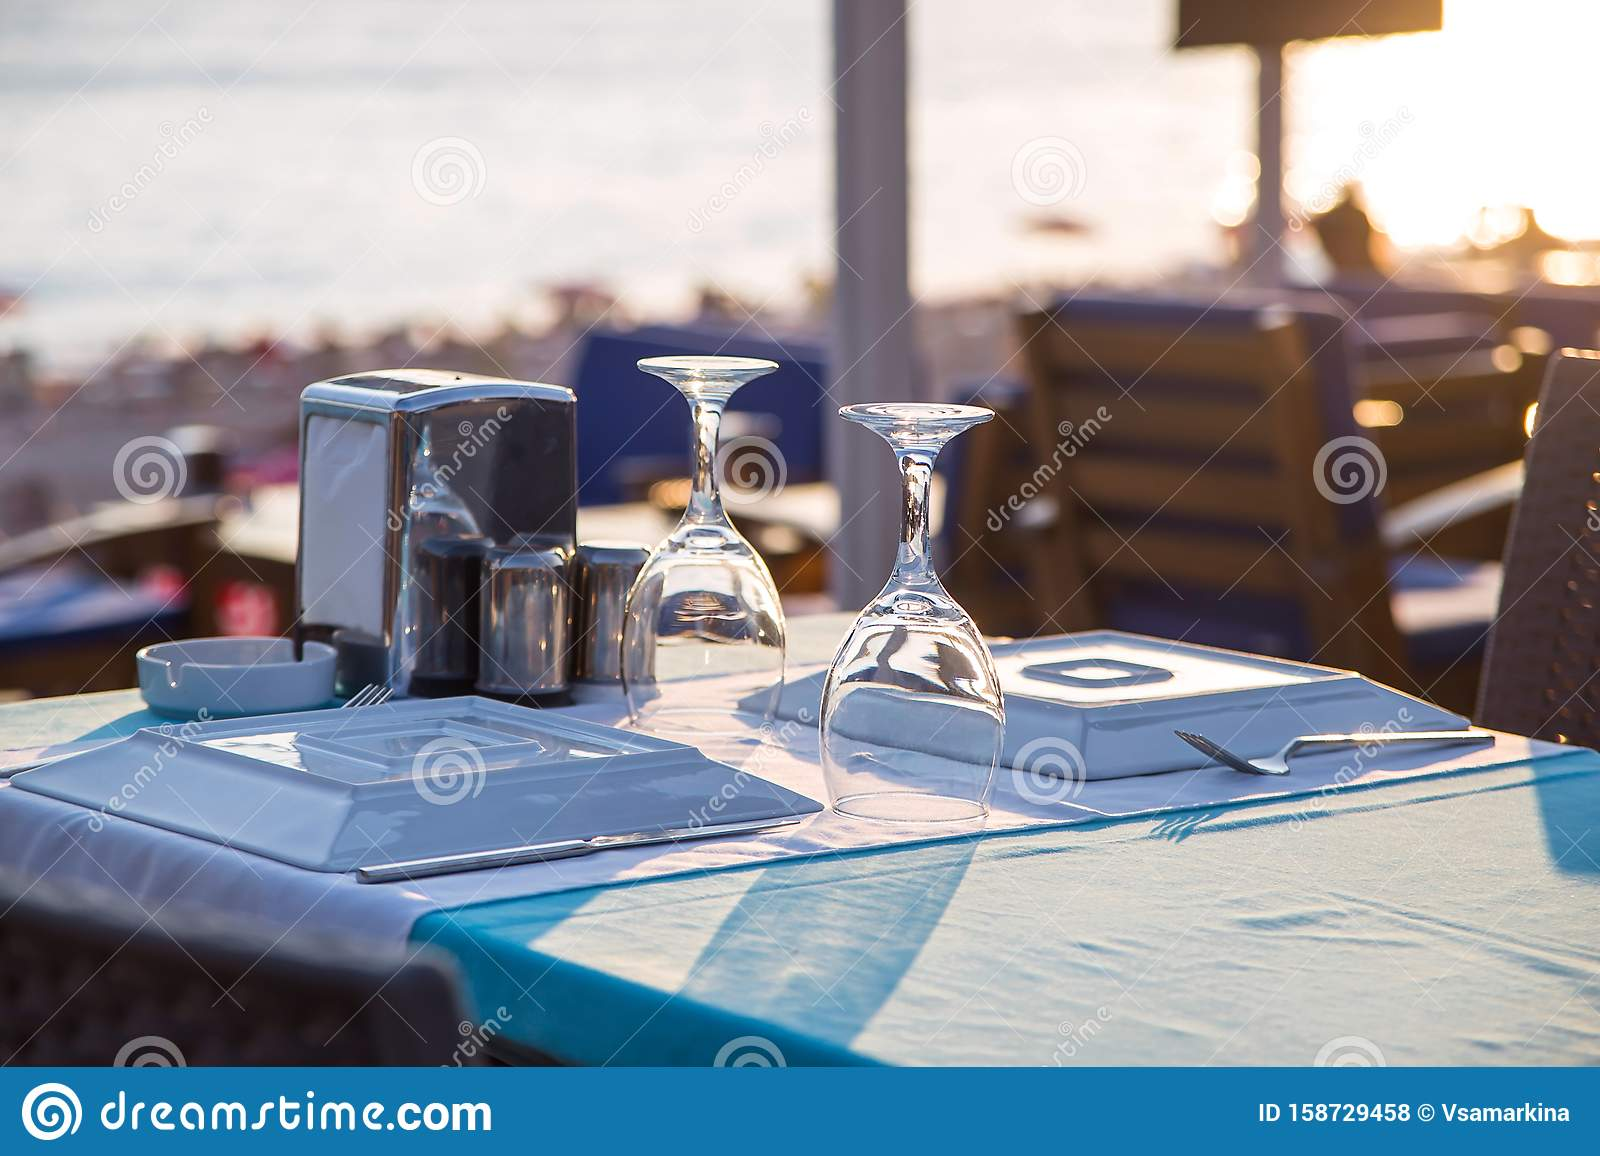 Travel table for lunch or dinner by the sea